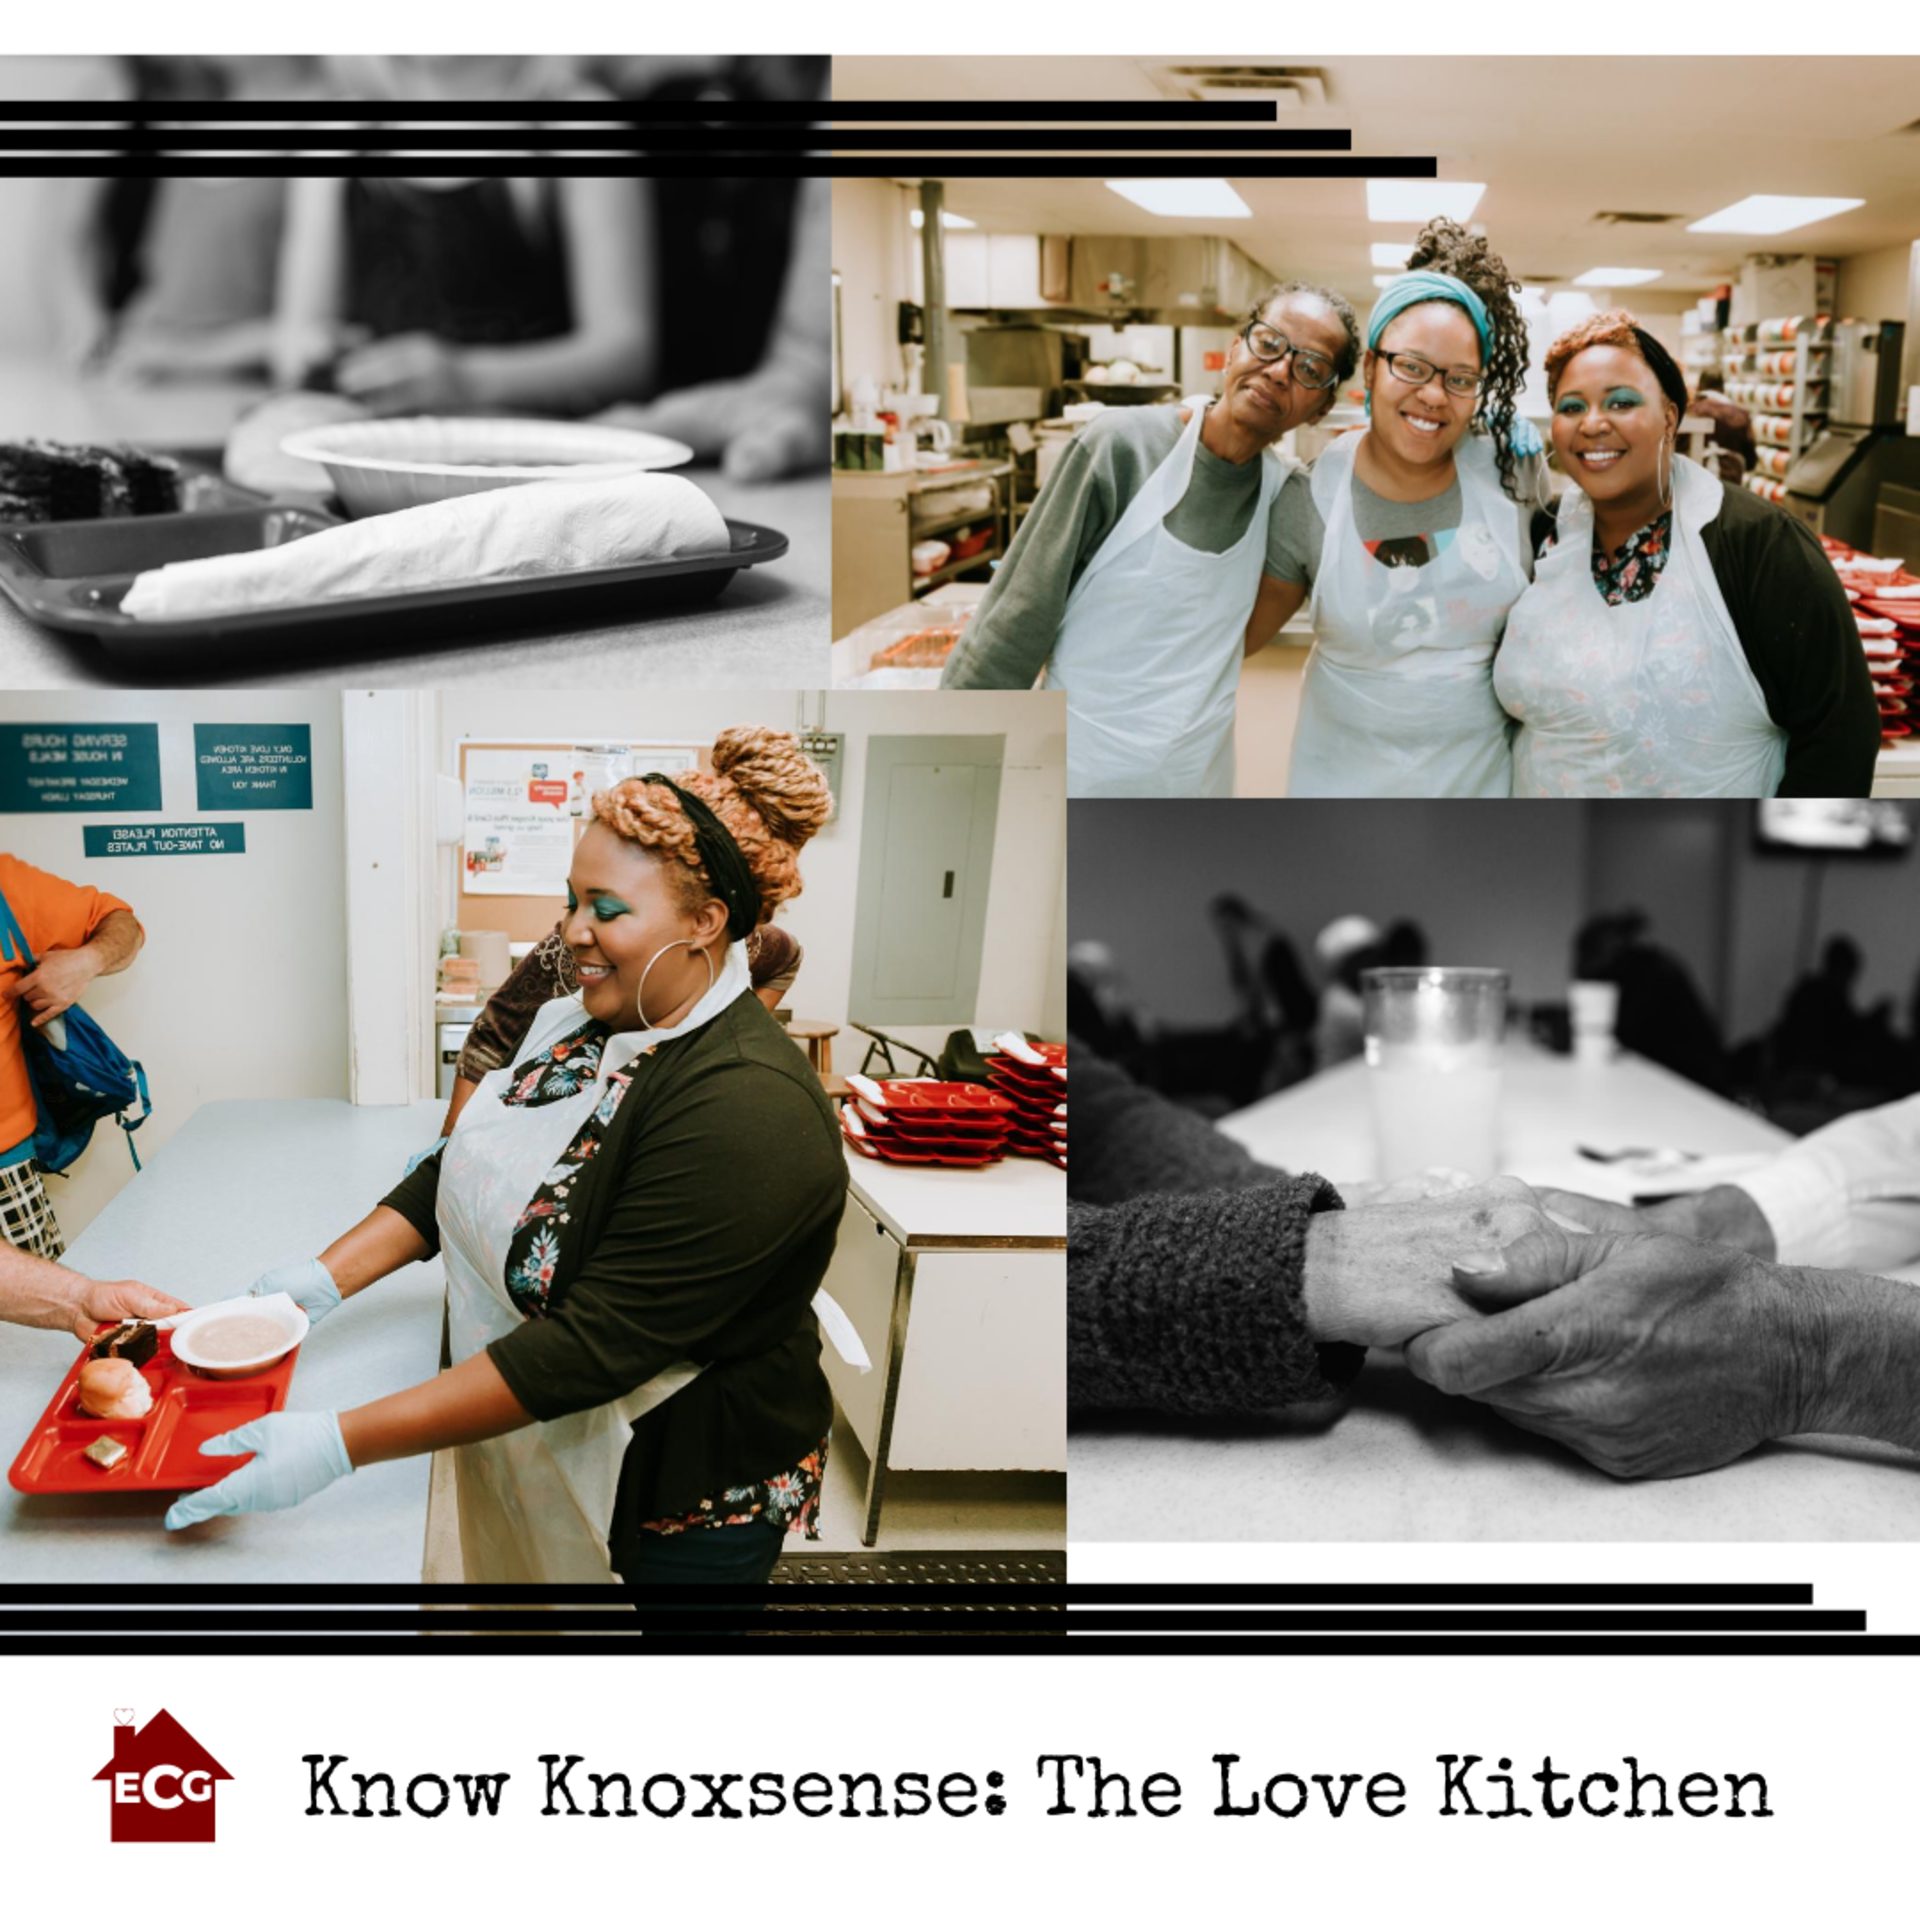 Know Knoxsense: The Love Kitchen Needs You!